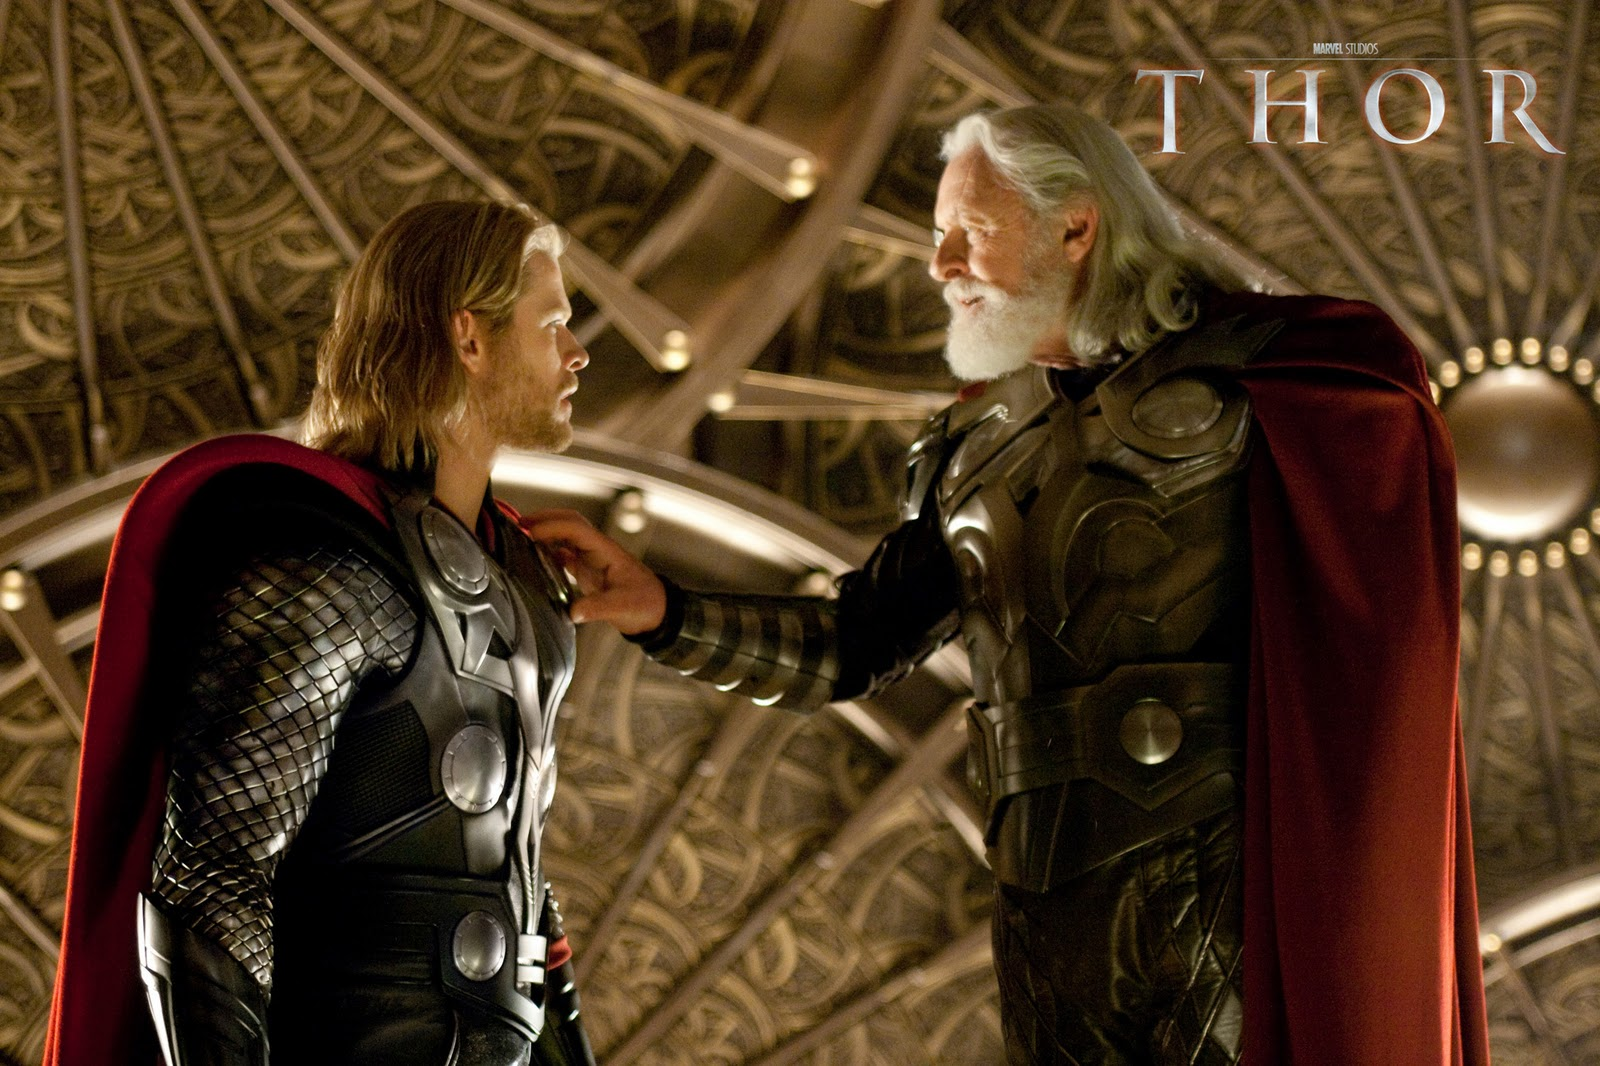 http://1.bp.blogspot.com/-LlfgI-aBFiI/TcNprdmqYmI/AAAAAAAAFYs/_IQEPNOXCEw/s1600/Thor-Movie-2011-Wallpapers-4.jpg